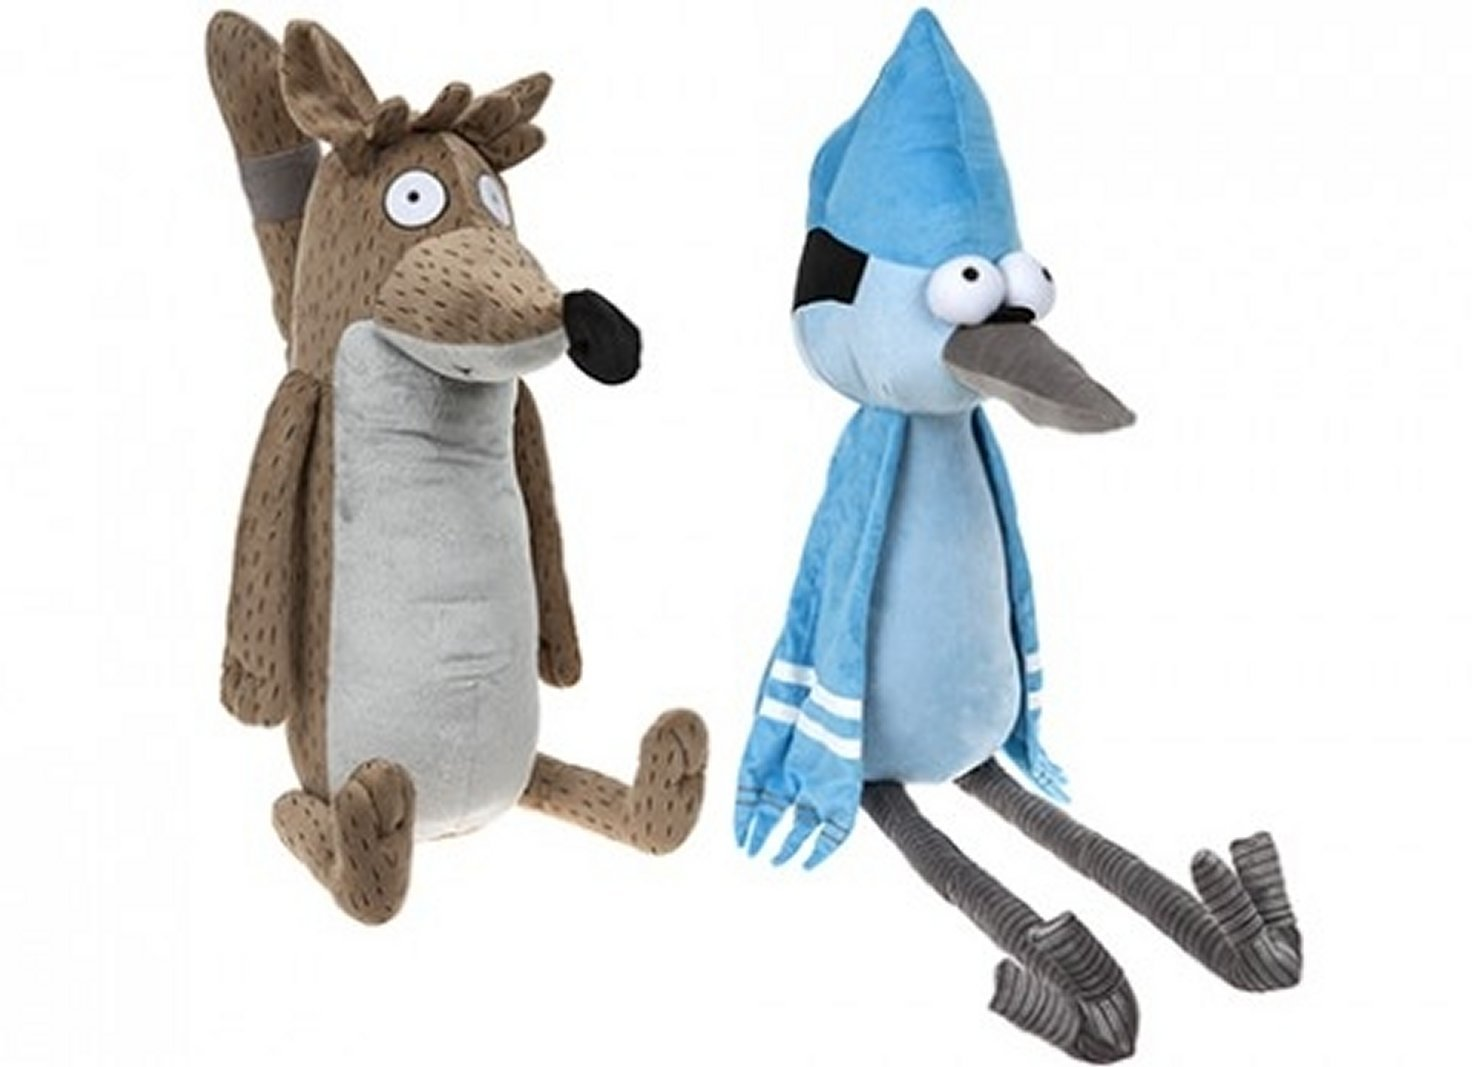 1 x Official 24 Inch Regular Show Plush soft toy Rigby or Mordecai   Amazon.co.uk  Toys   Games 723873892